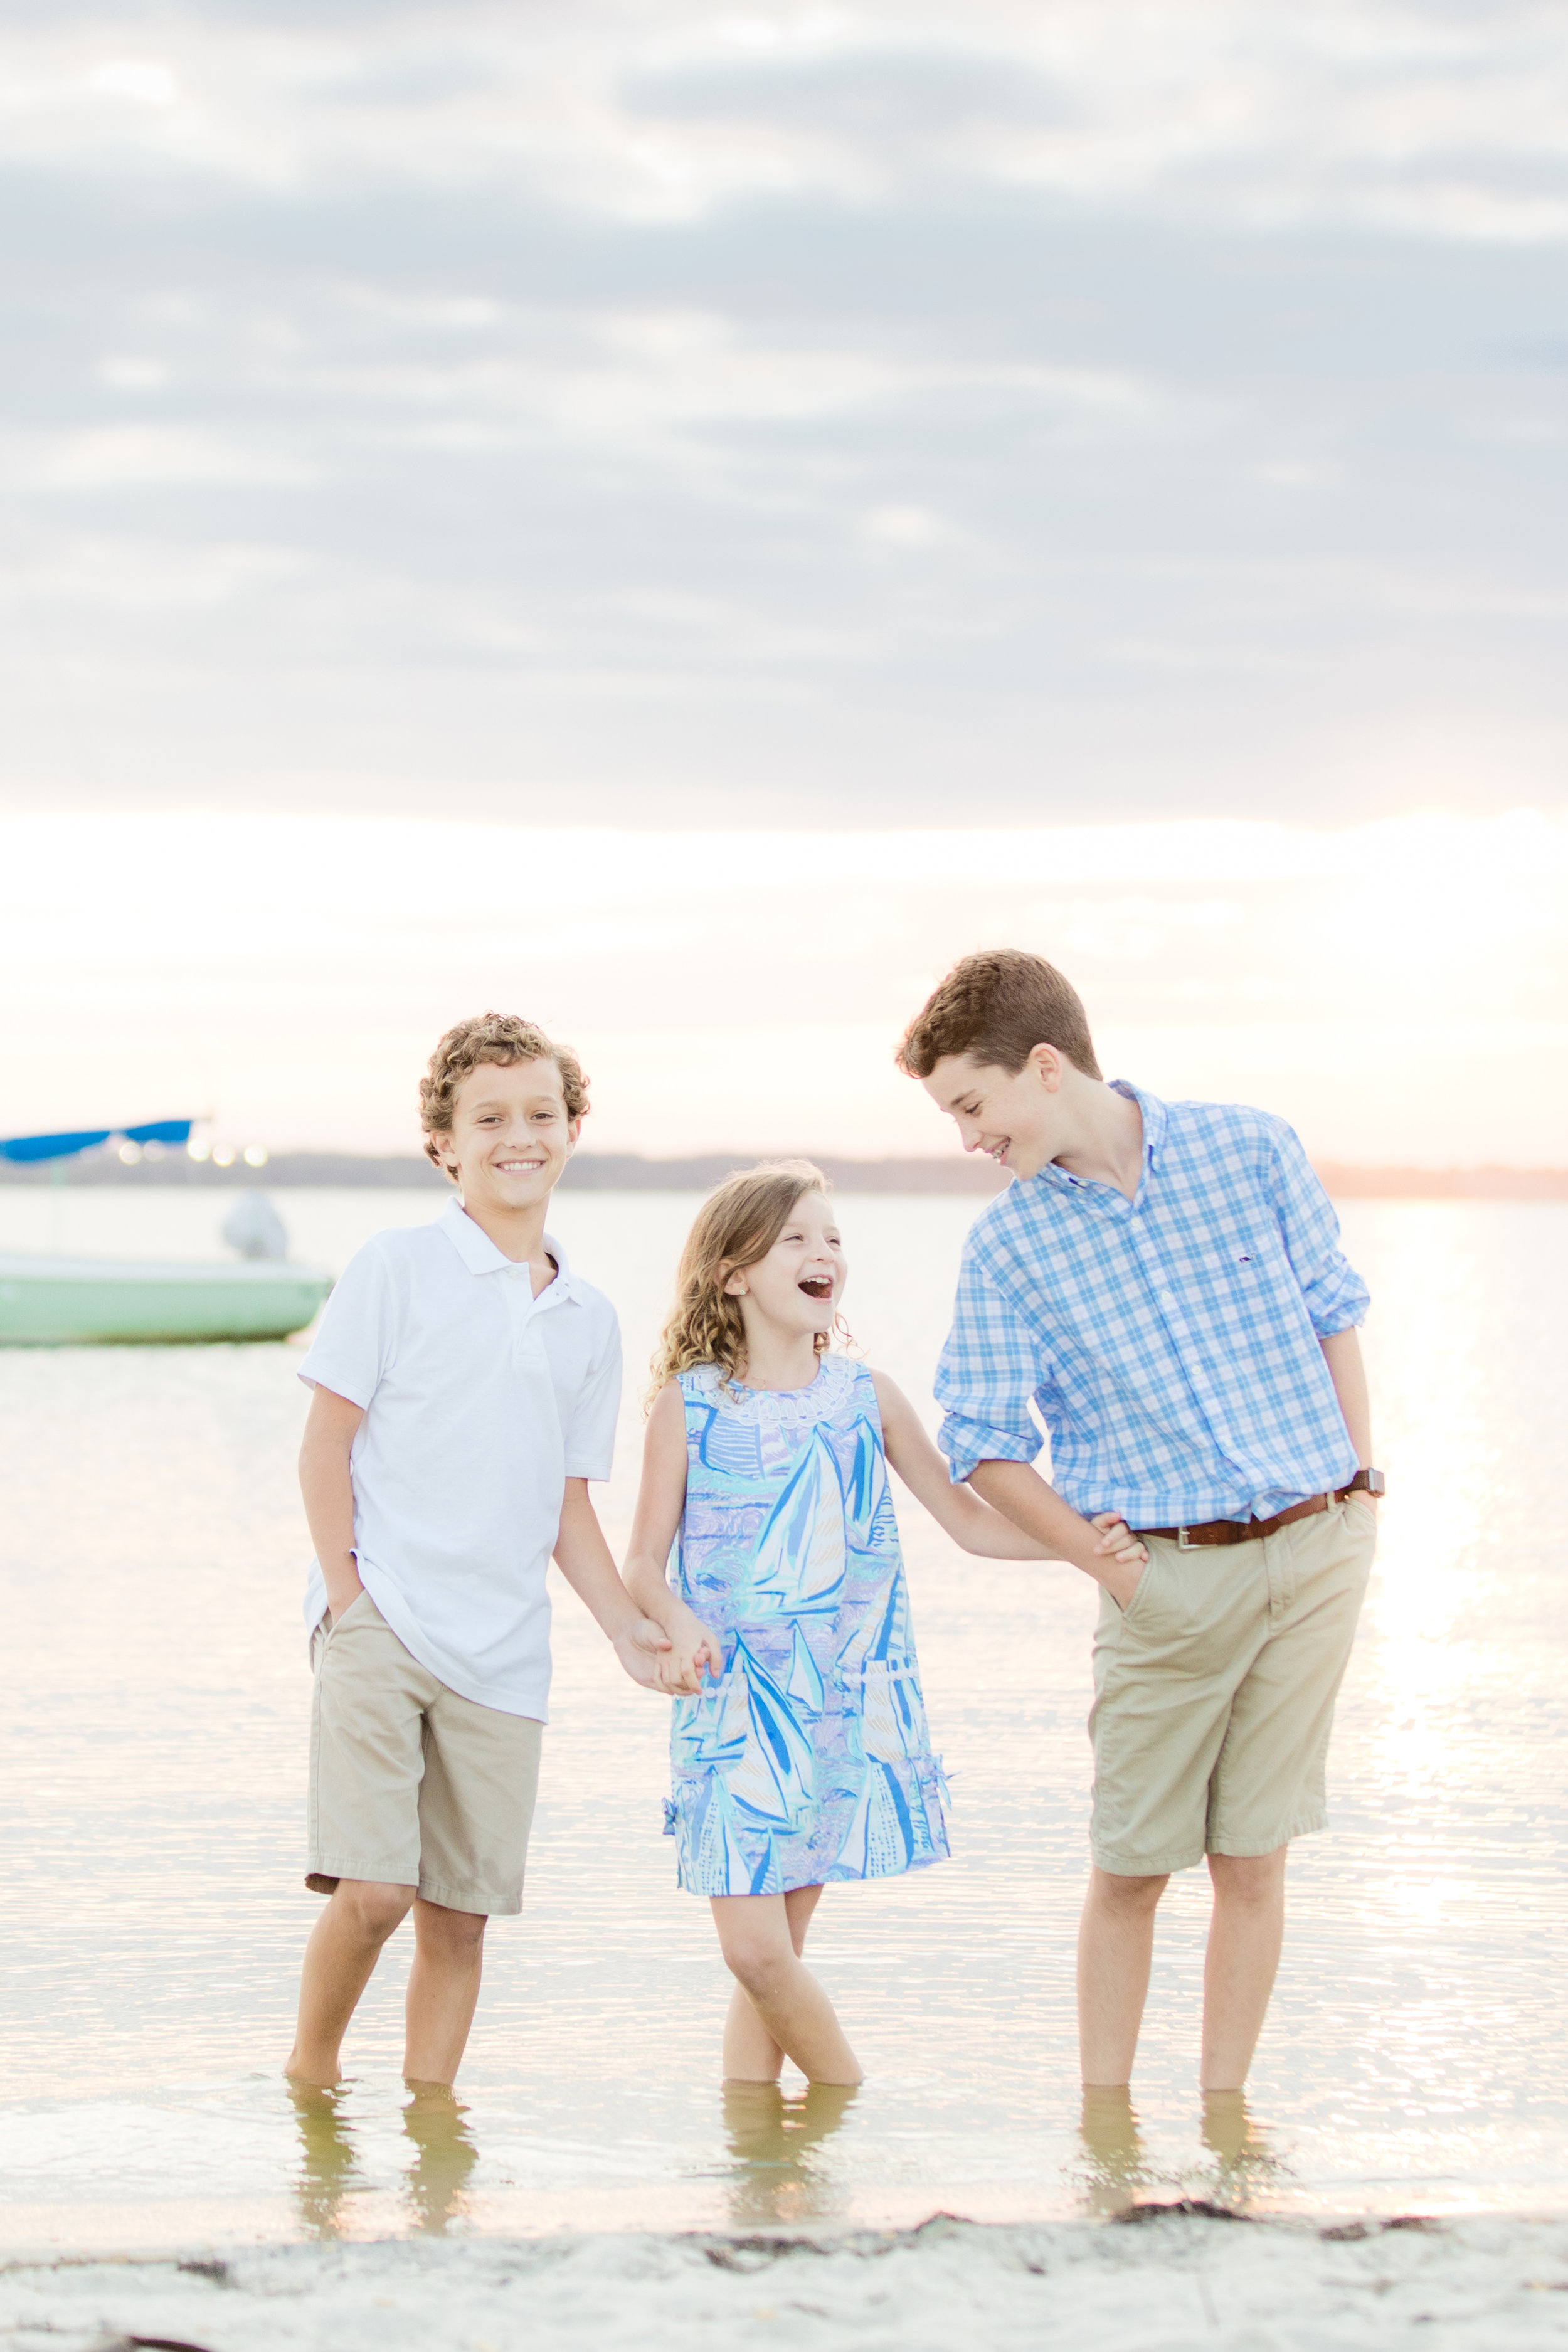 Portfolio - Grab a drink and take a look at some of our favorite family photos and locations throughout New Jersey.